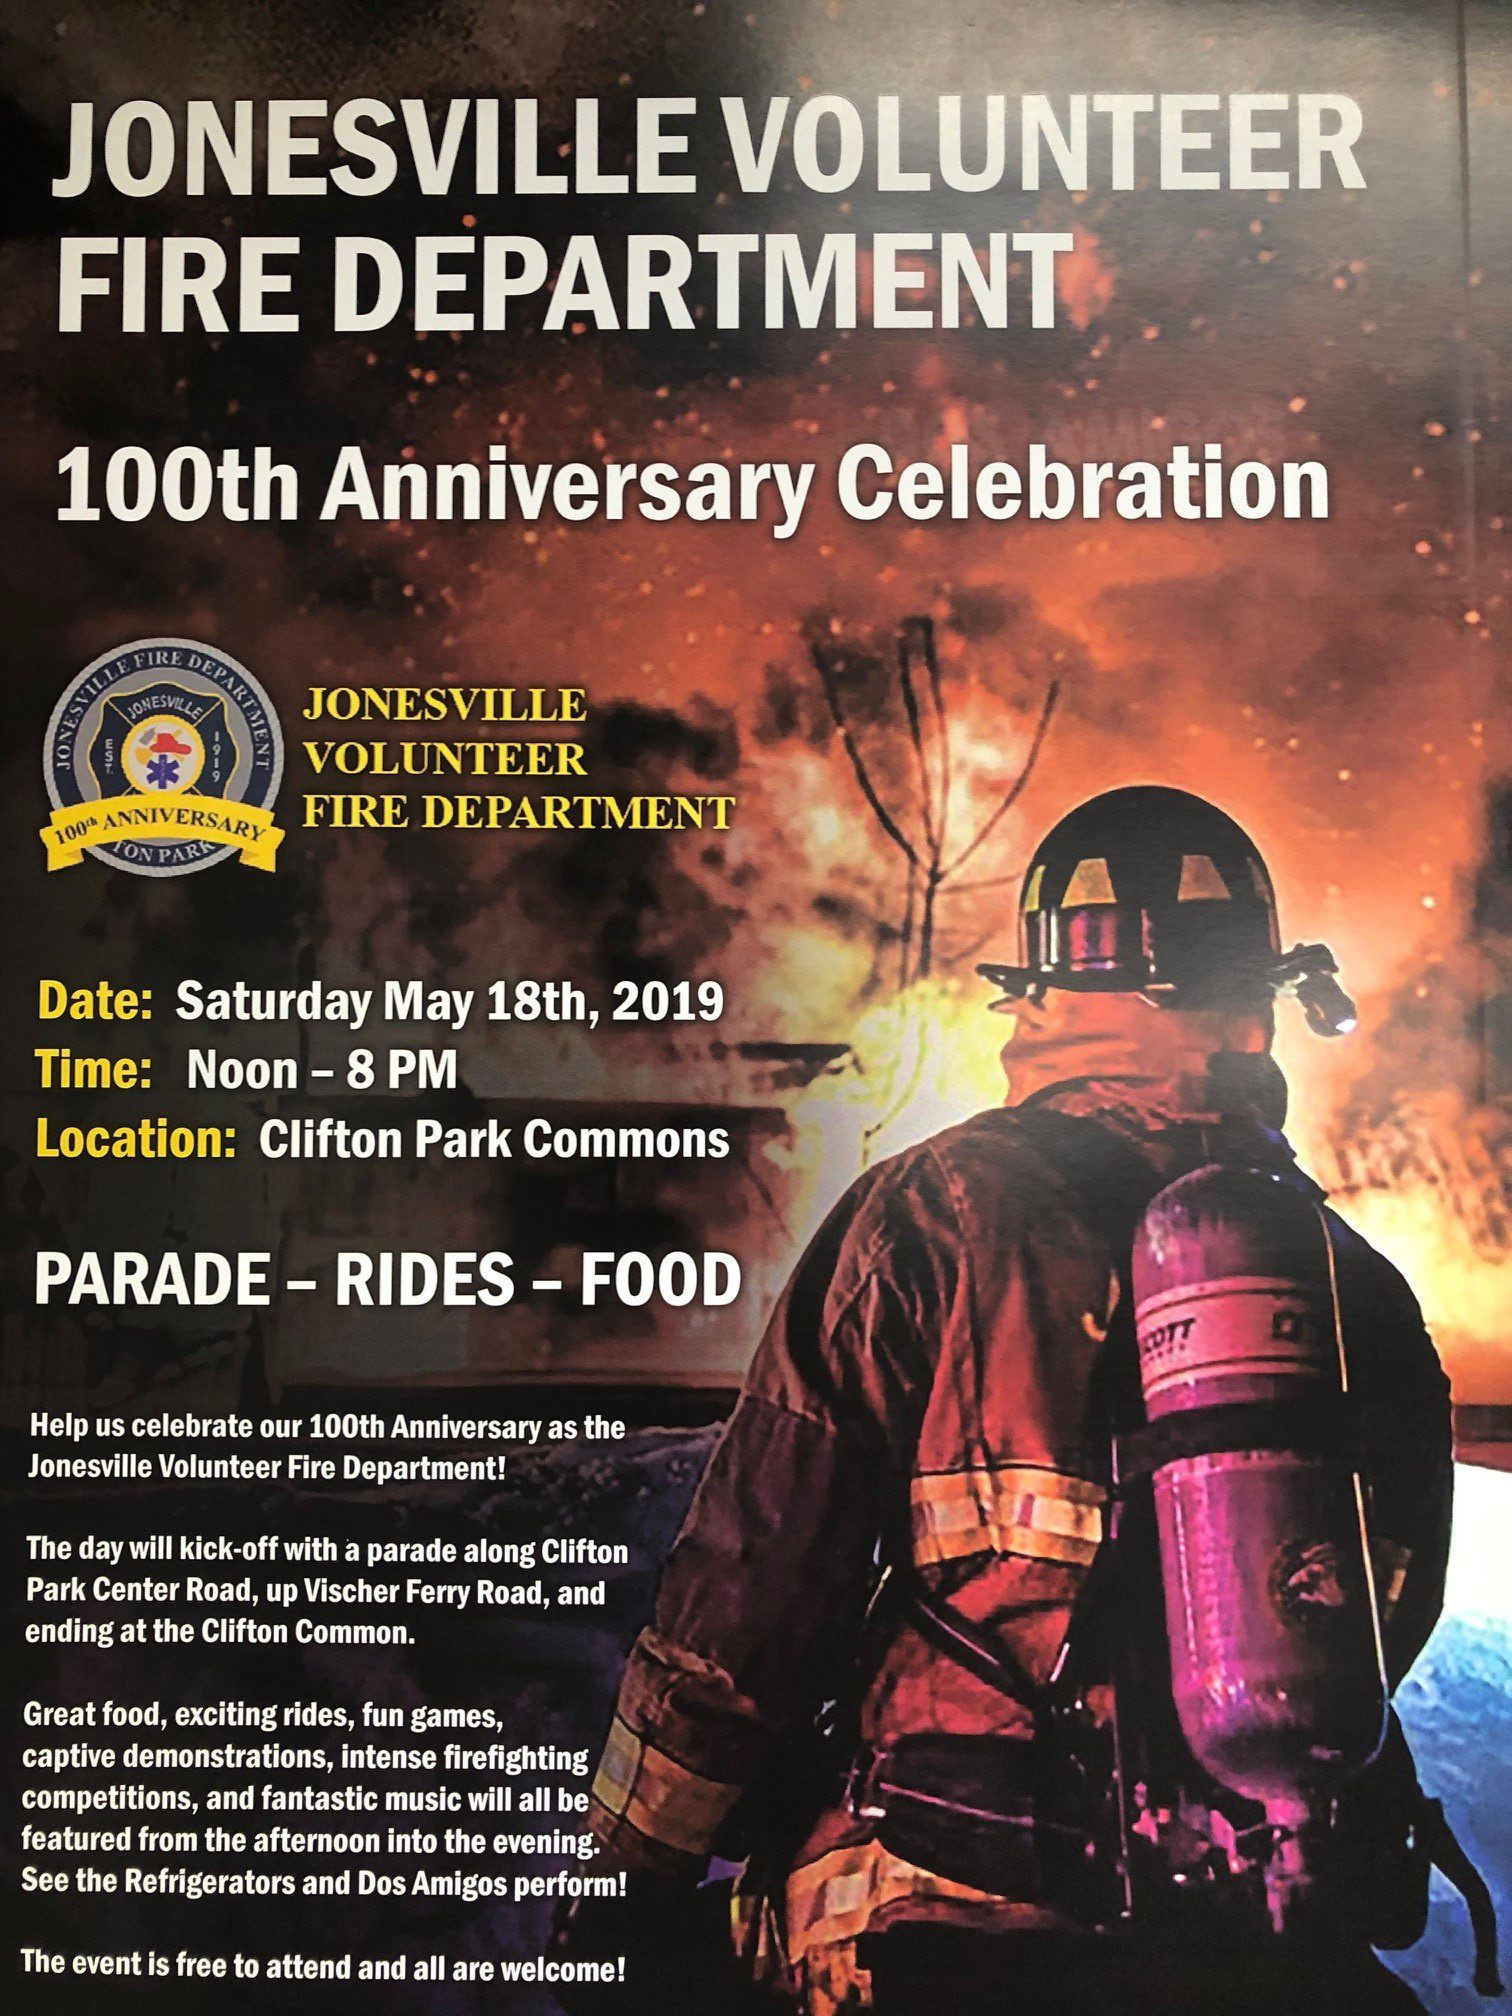 Jonesville Volunteer Fire Department 100th Anniversary Celebration Information